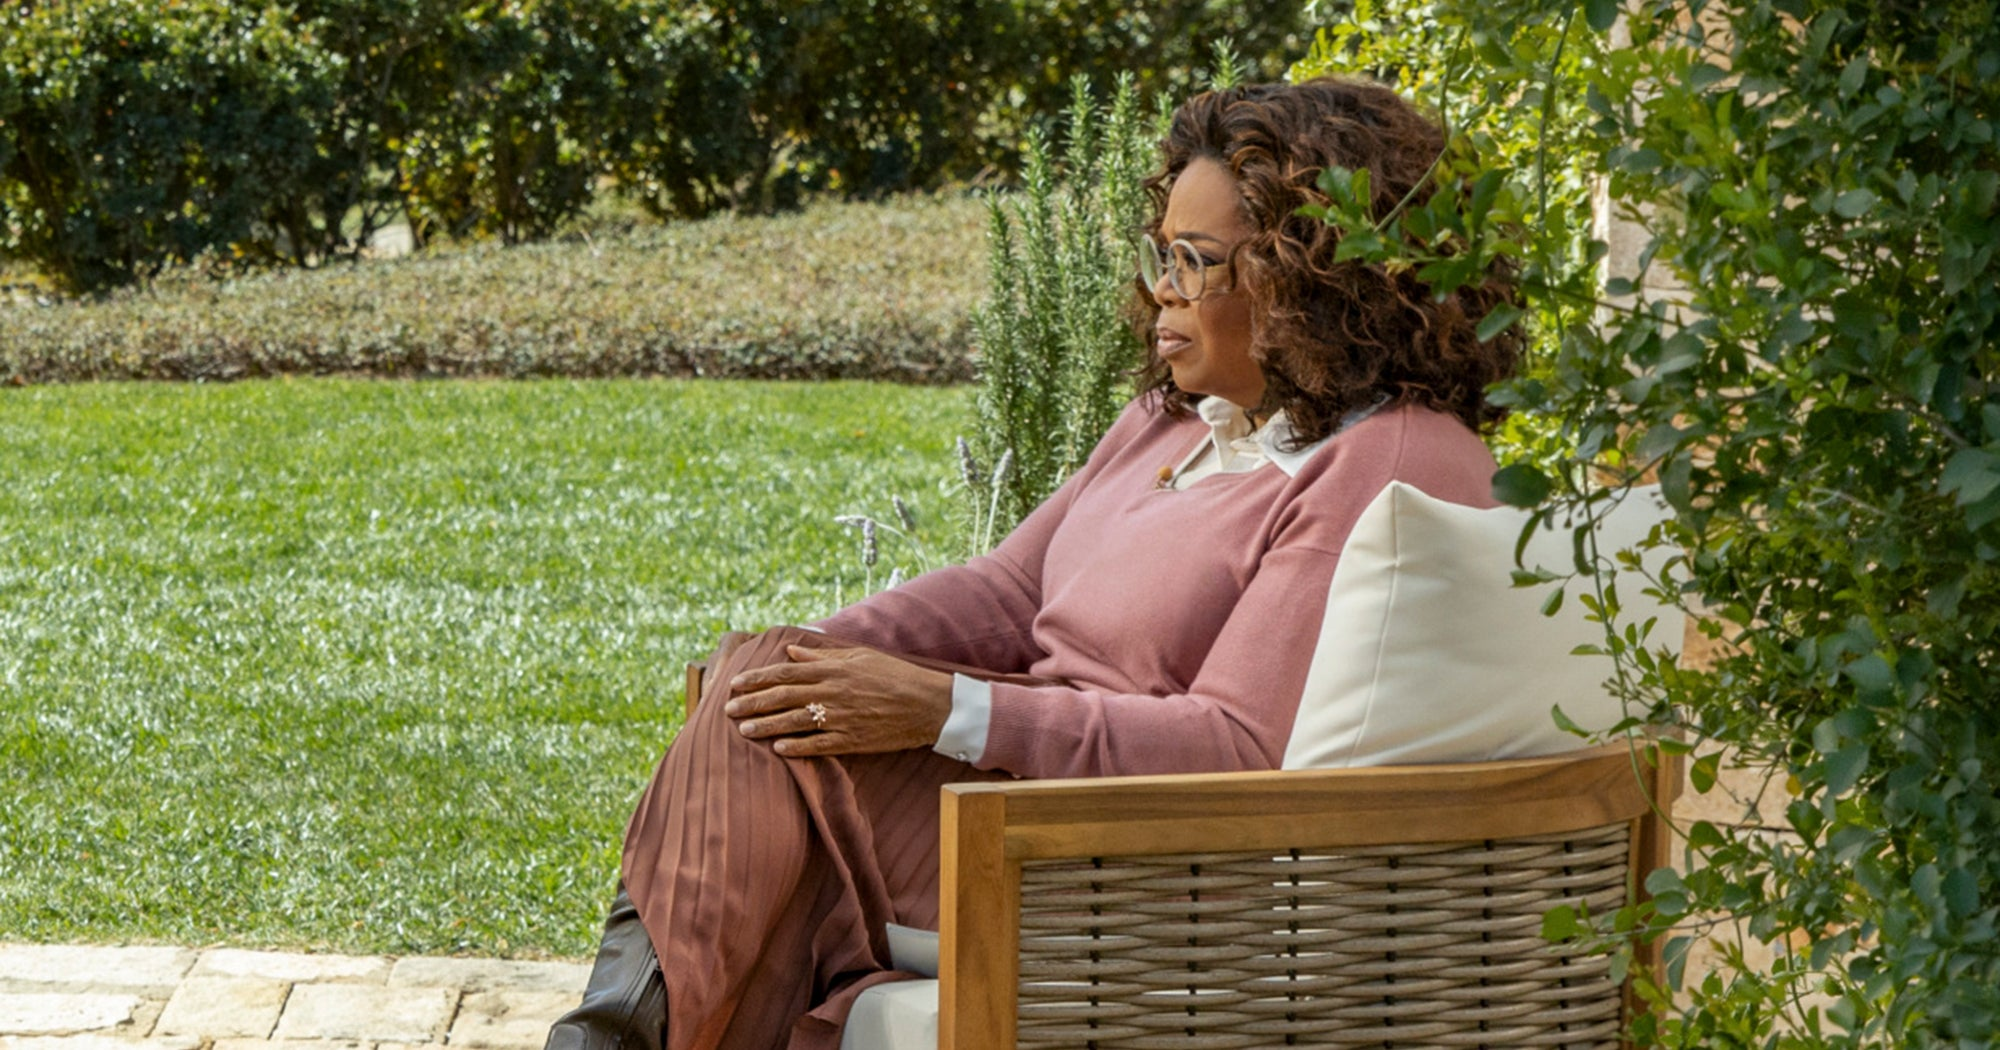 This Oprah Photo Is Quickly Becoming The Latest Example Of Digital Blackface